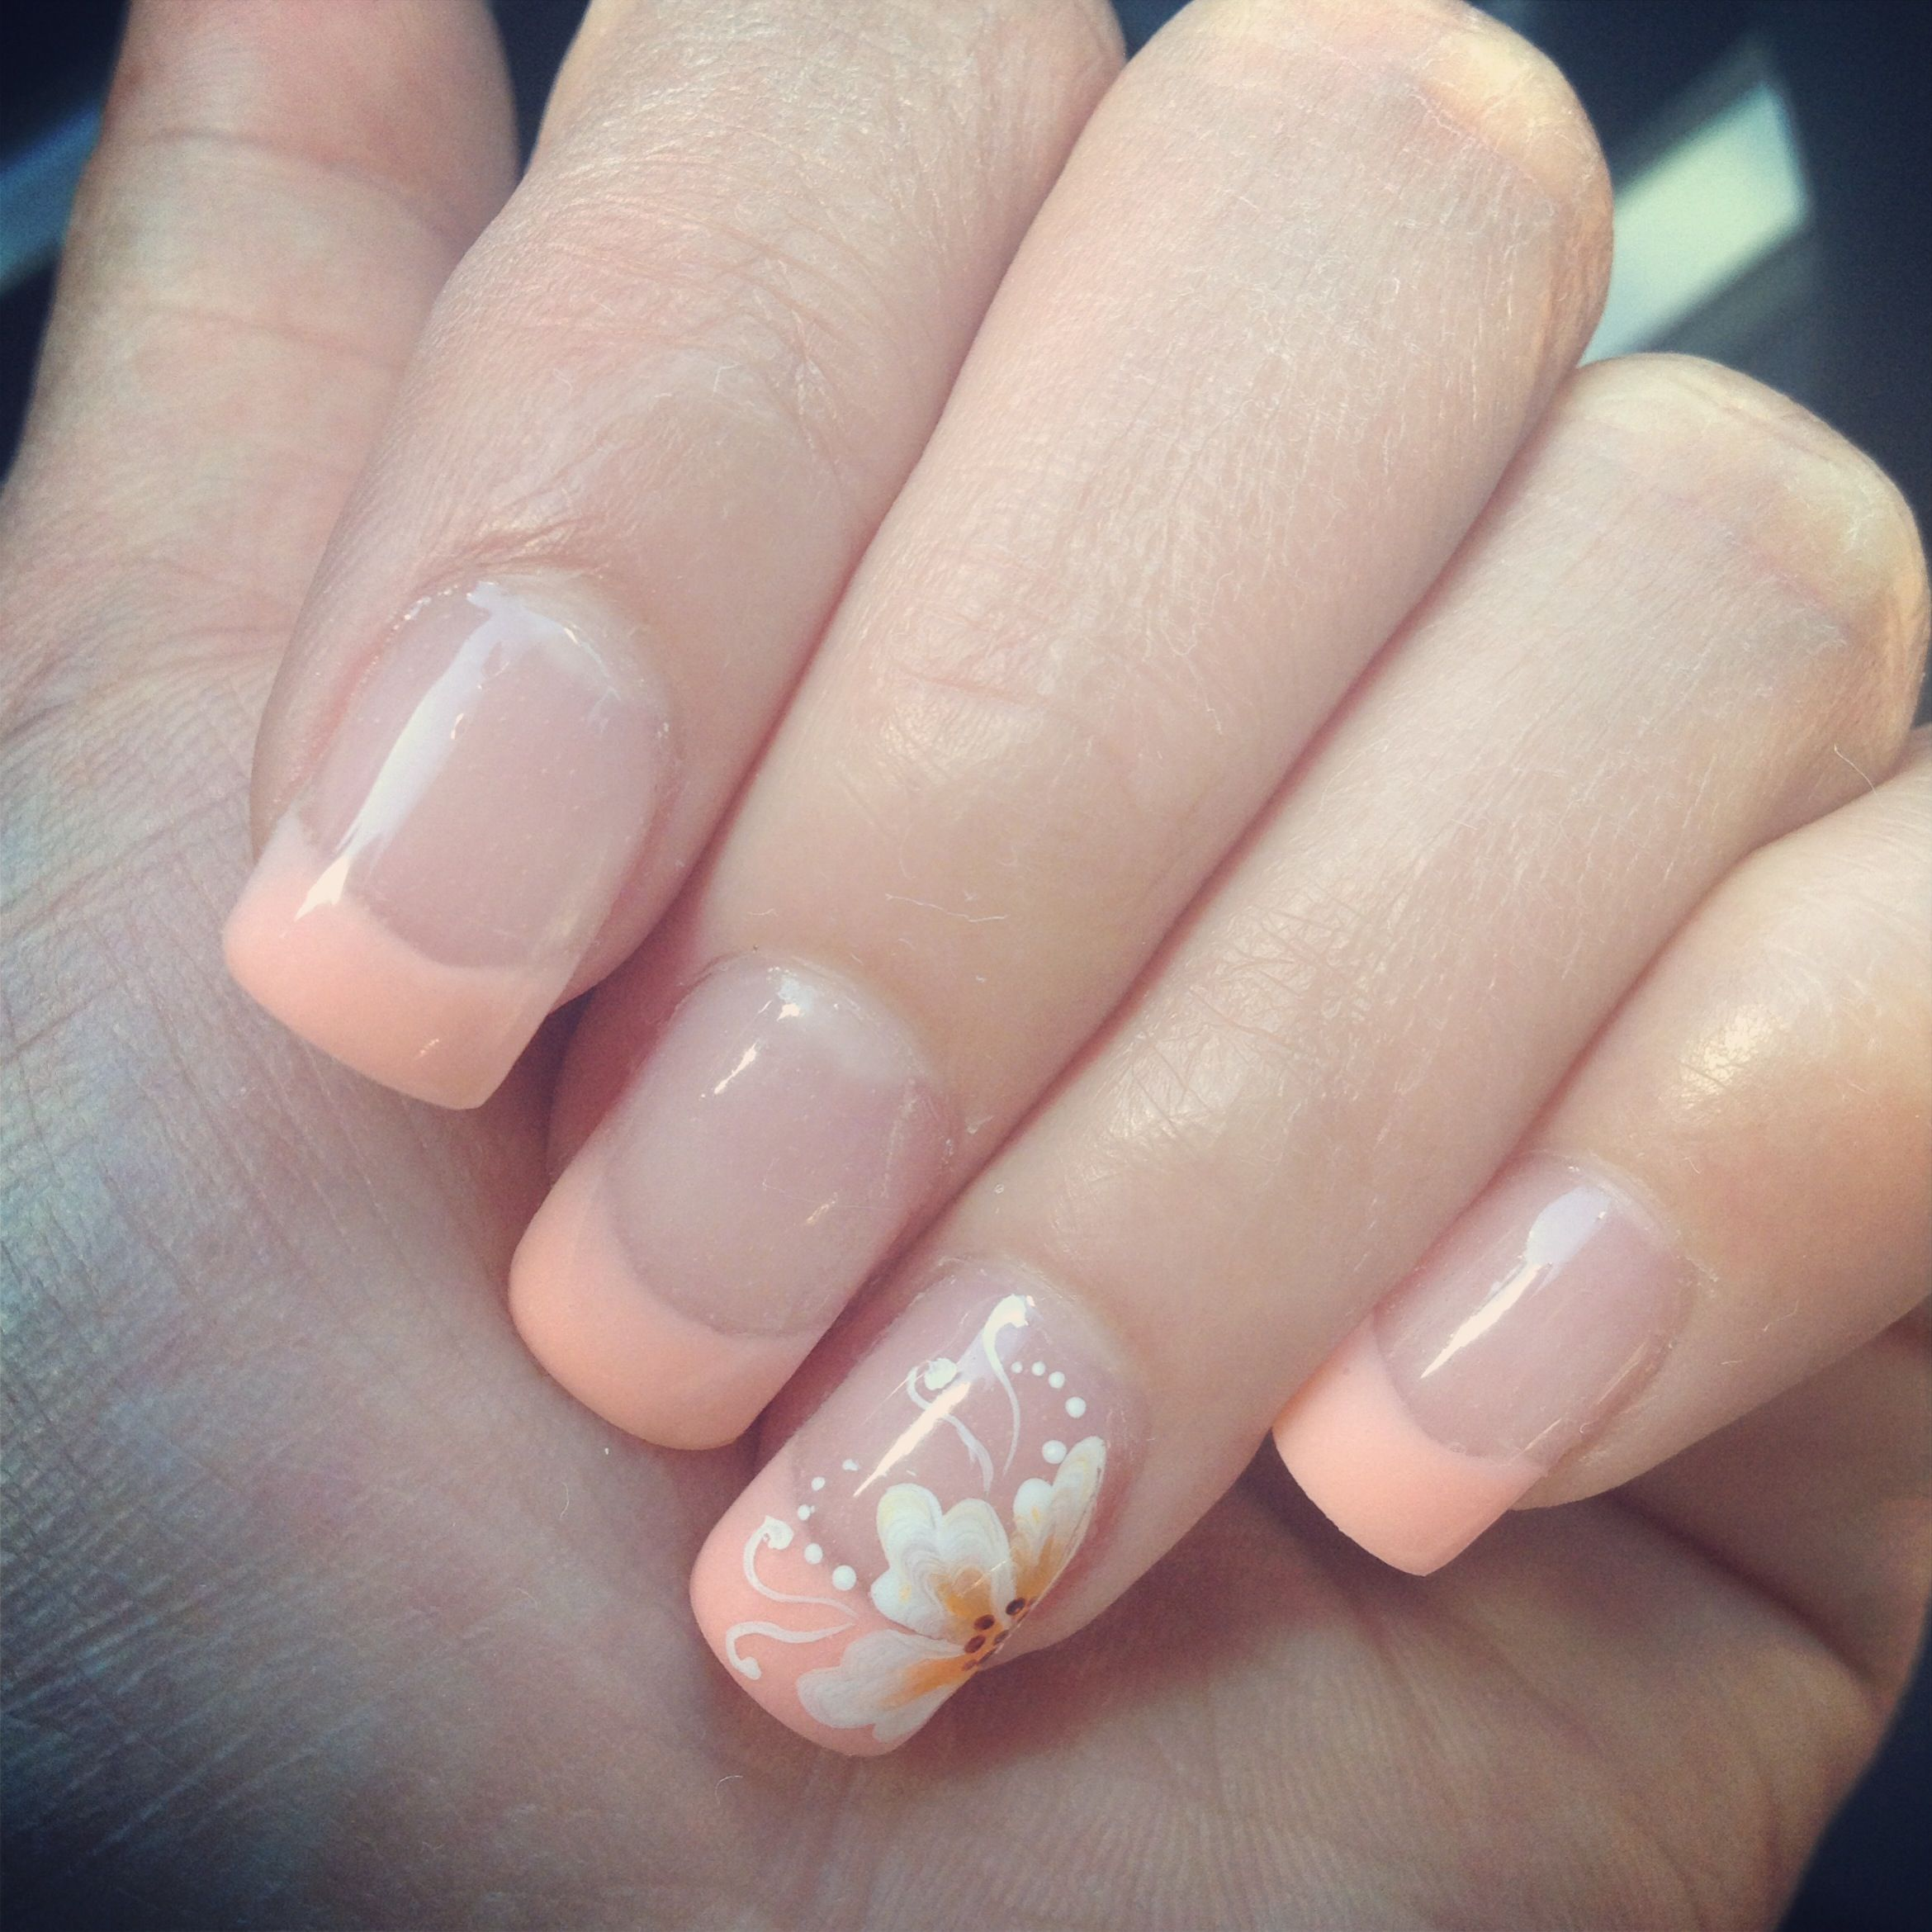 My own peach french nail with nail art :) | See more nail designs at ...